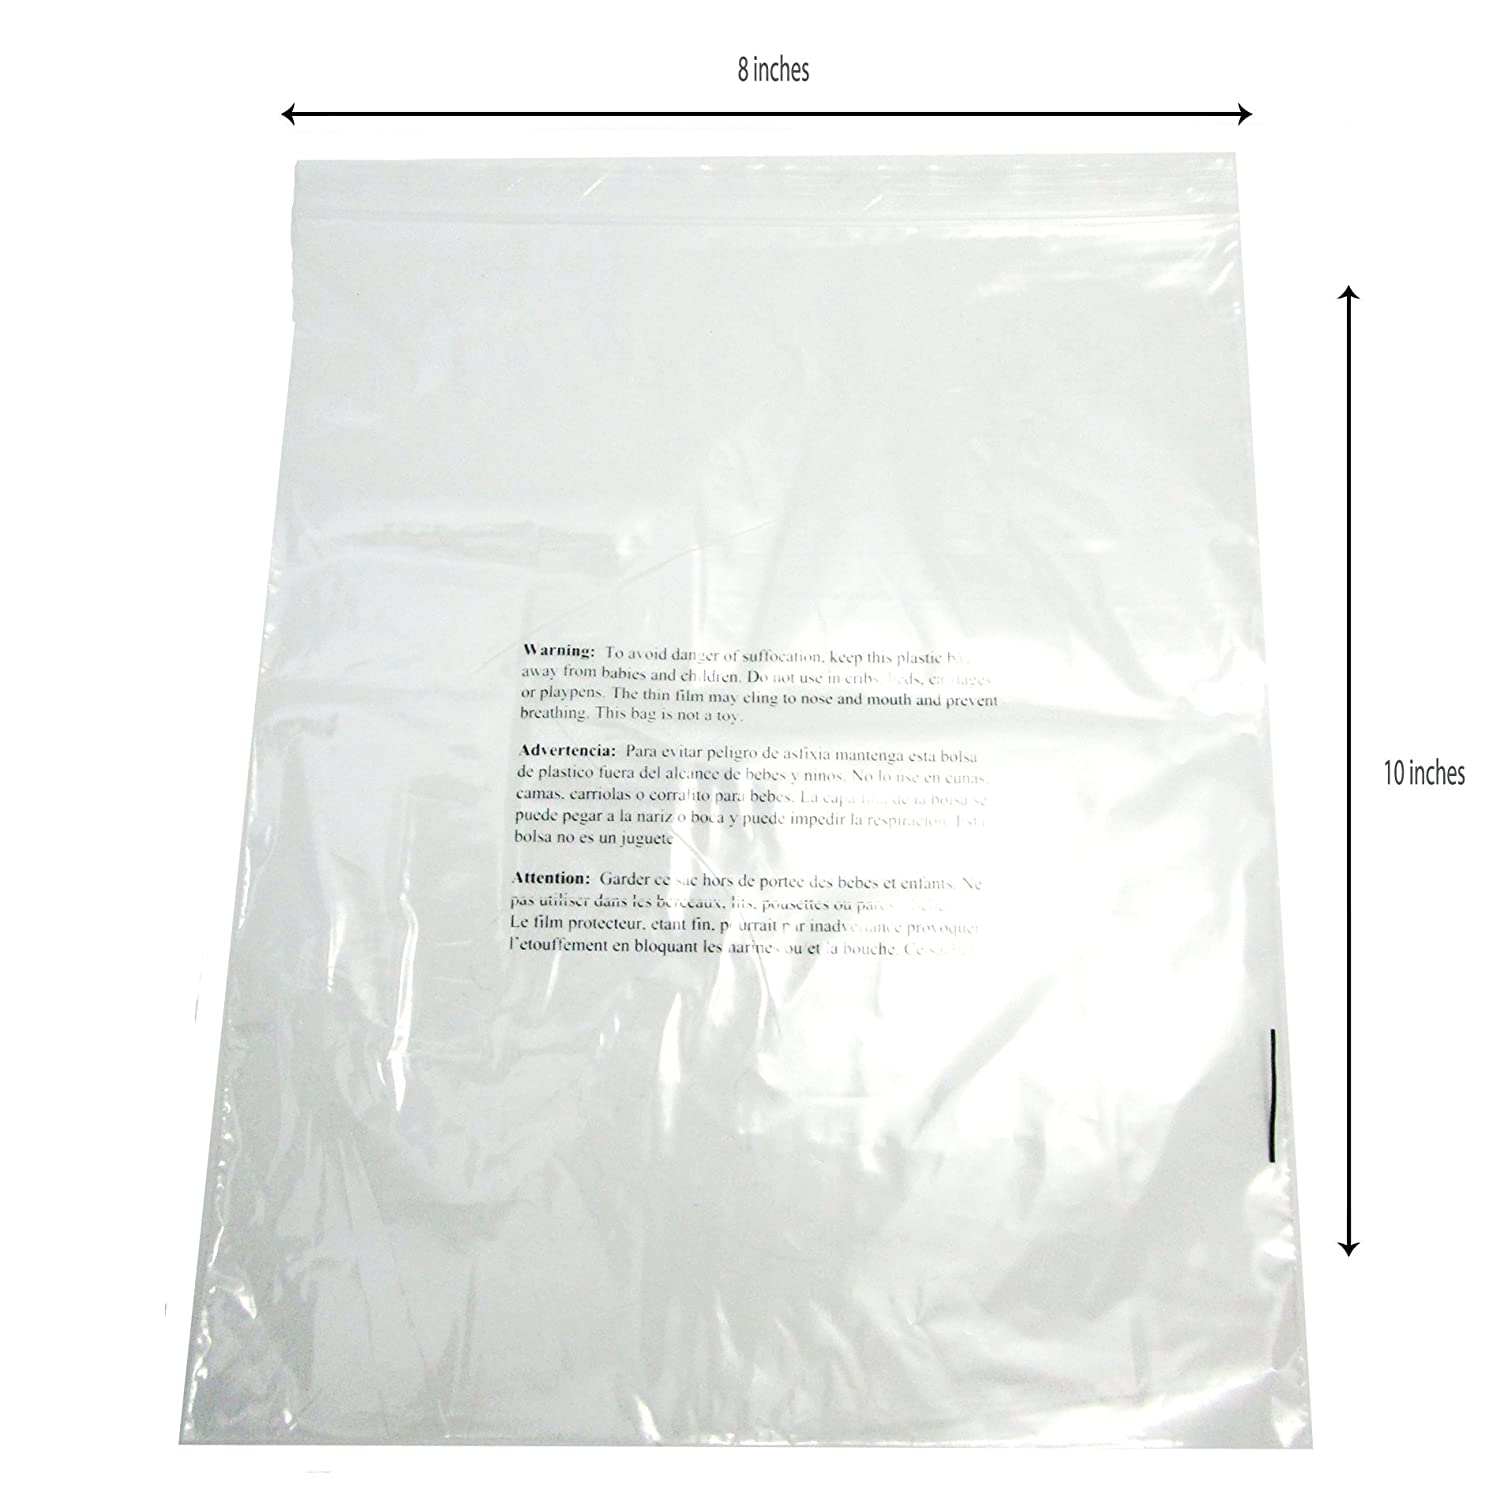 Amazon.com: 8 x 10 Self Sealing transparente Poly Bolsas ...